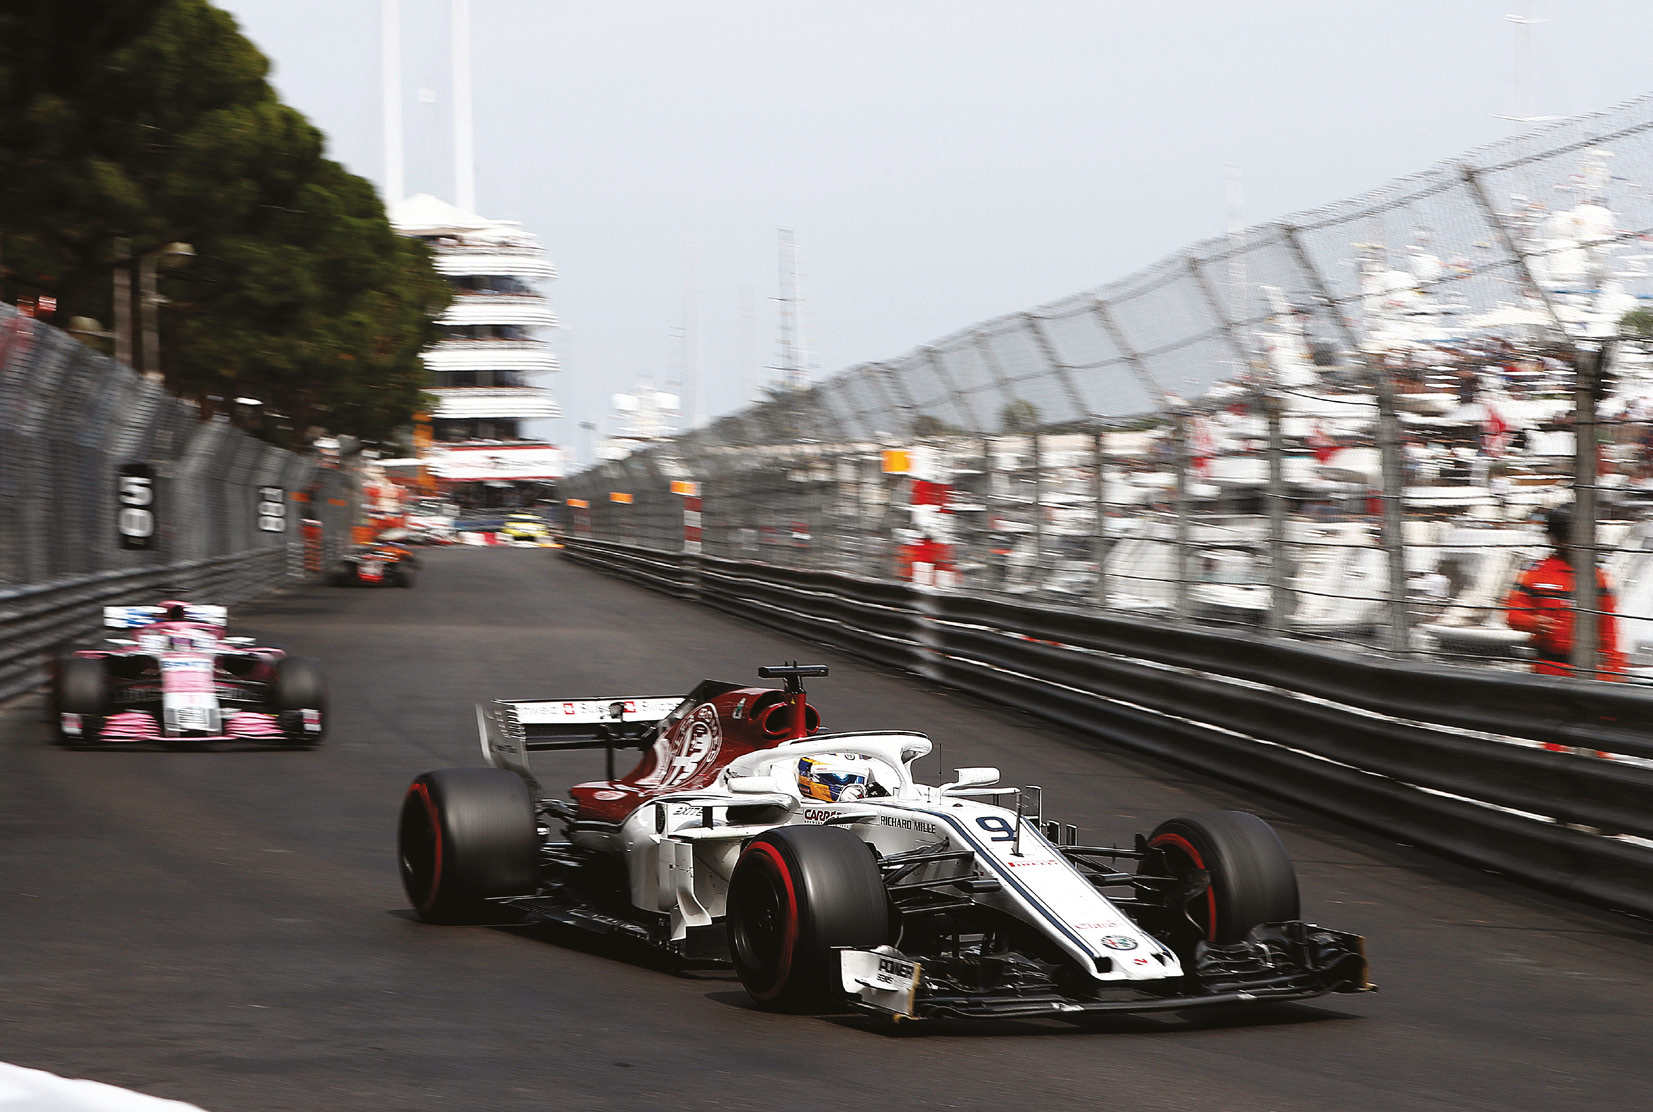 Contemporary Formula 1 is an obvious highlight, even if it's rarely the most dramatic of races